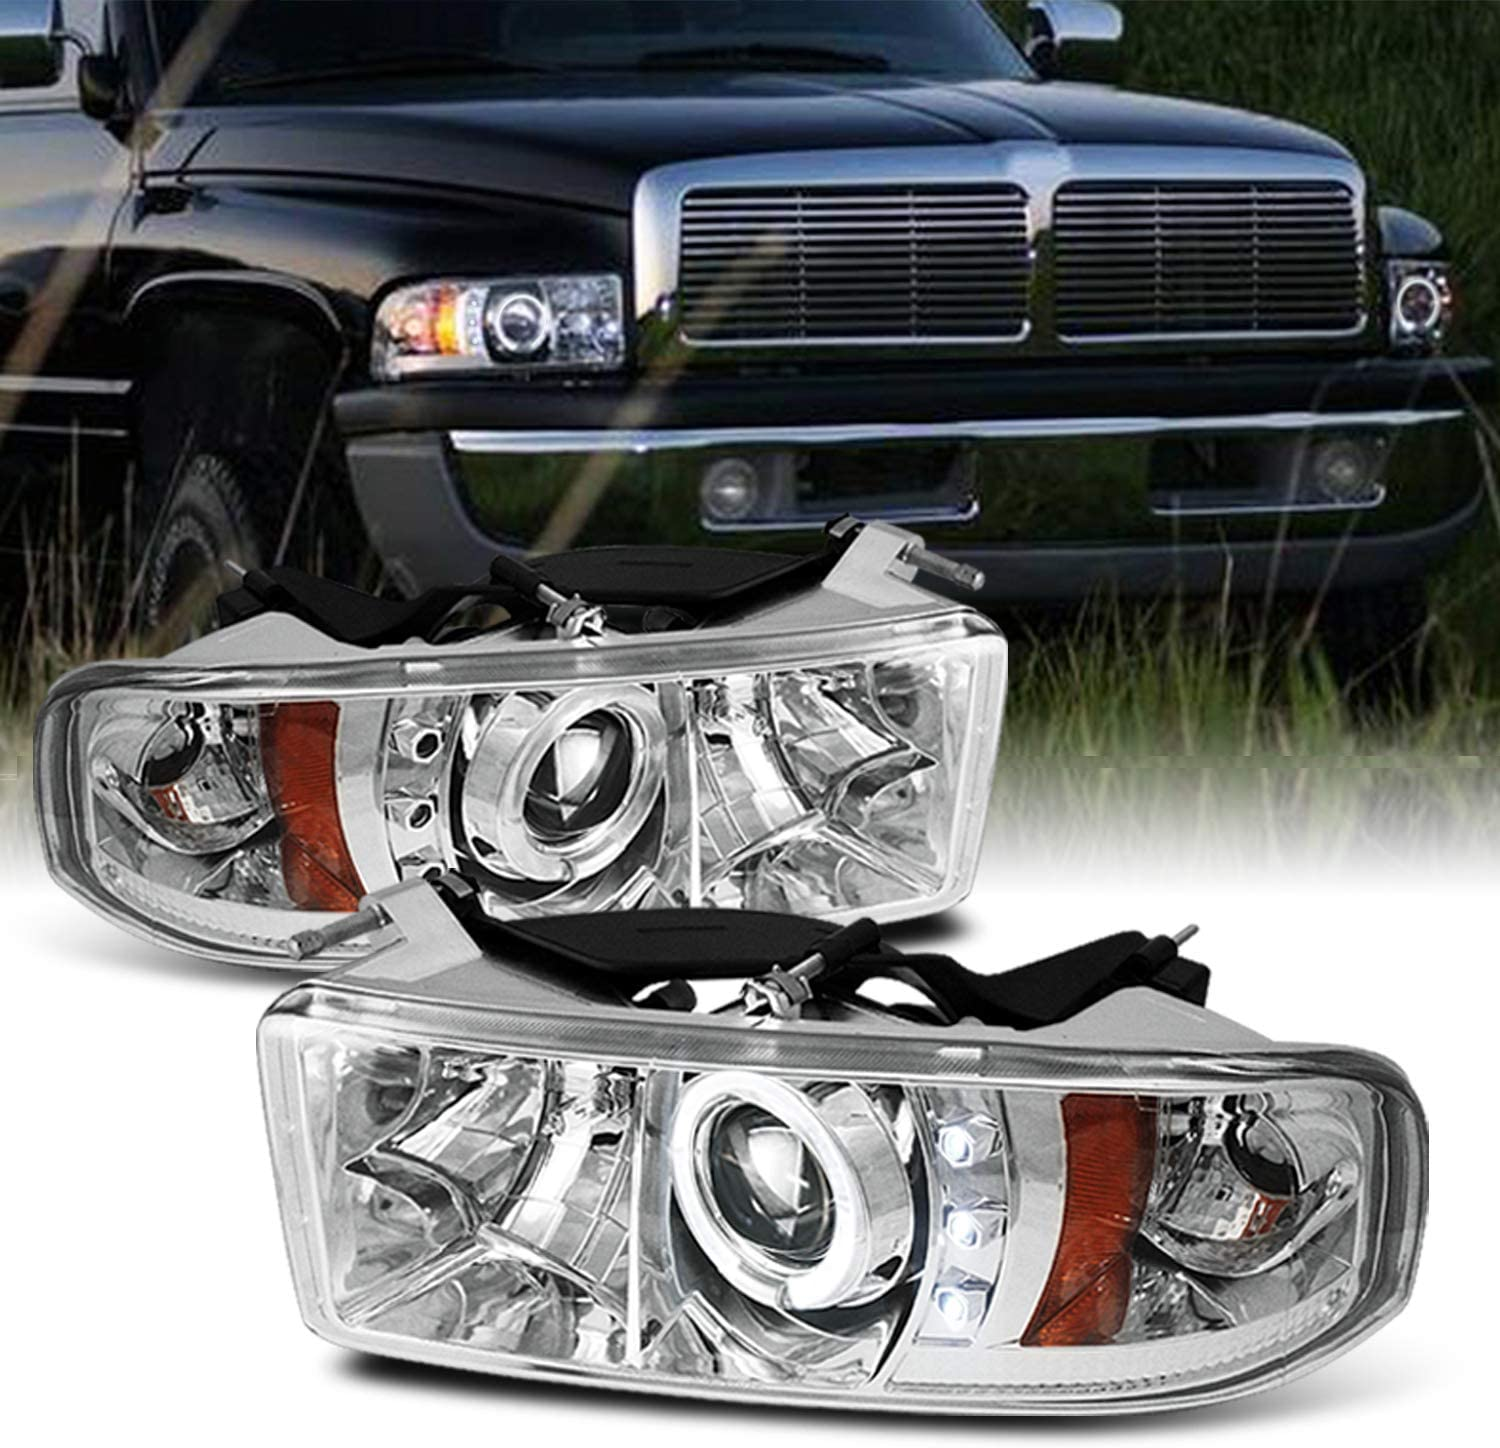 Driver side WITH install kit 6 inch -Chrome LED 2010 Volvo VN630-POST Post mount spotlight